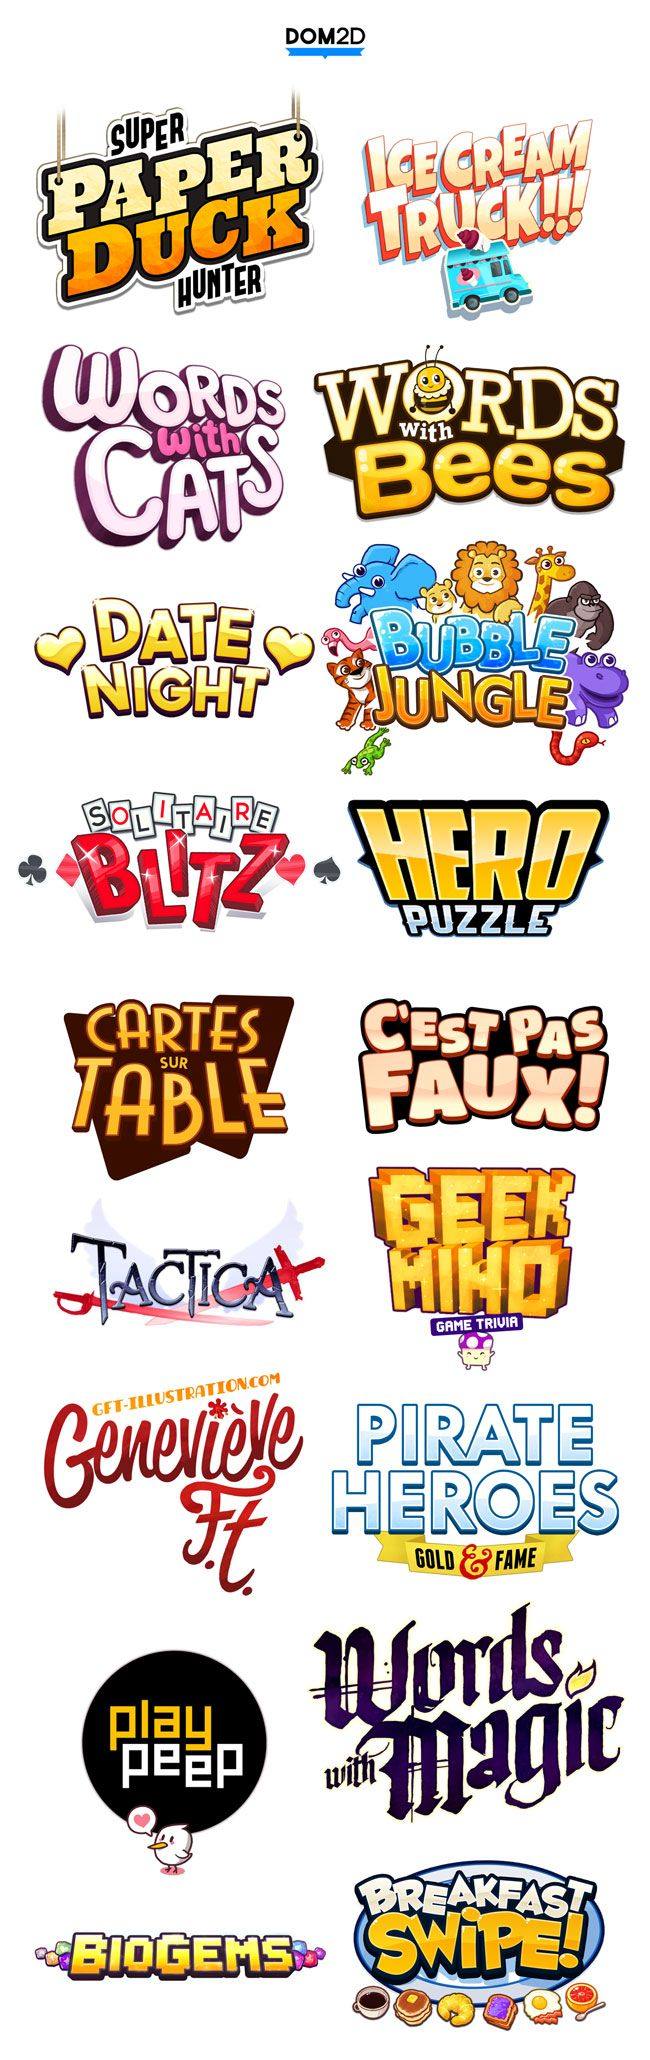 AWESOME game cartoony funky inspiring colorful cheerful funny logo inspiration. Good for all kinds of graphic design and marketing, mobile apps or games. Check out my work on www.Dribbble.com/vmdx Más                                                                                                                                                                                 More